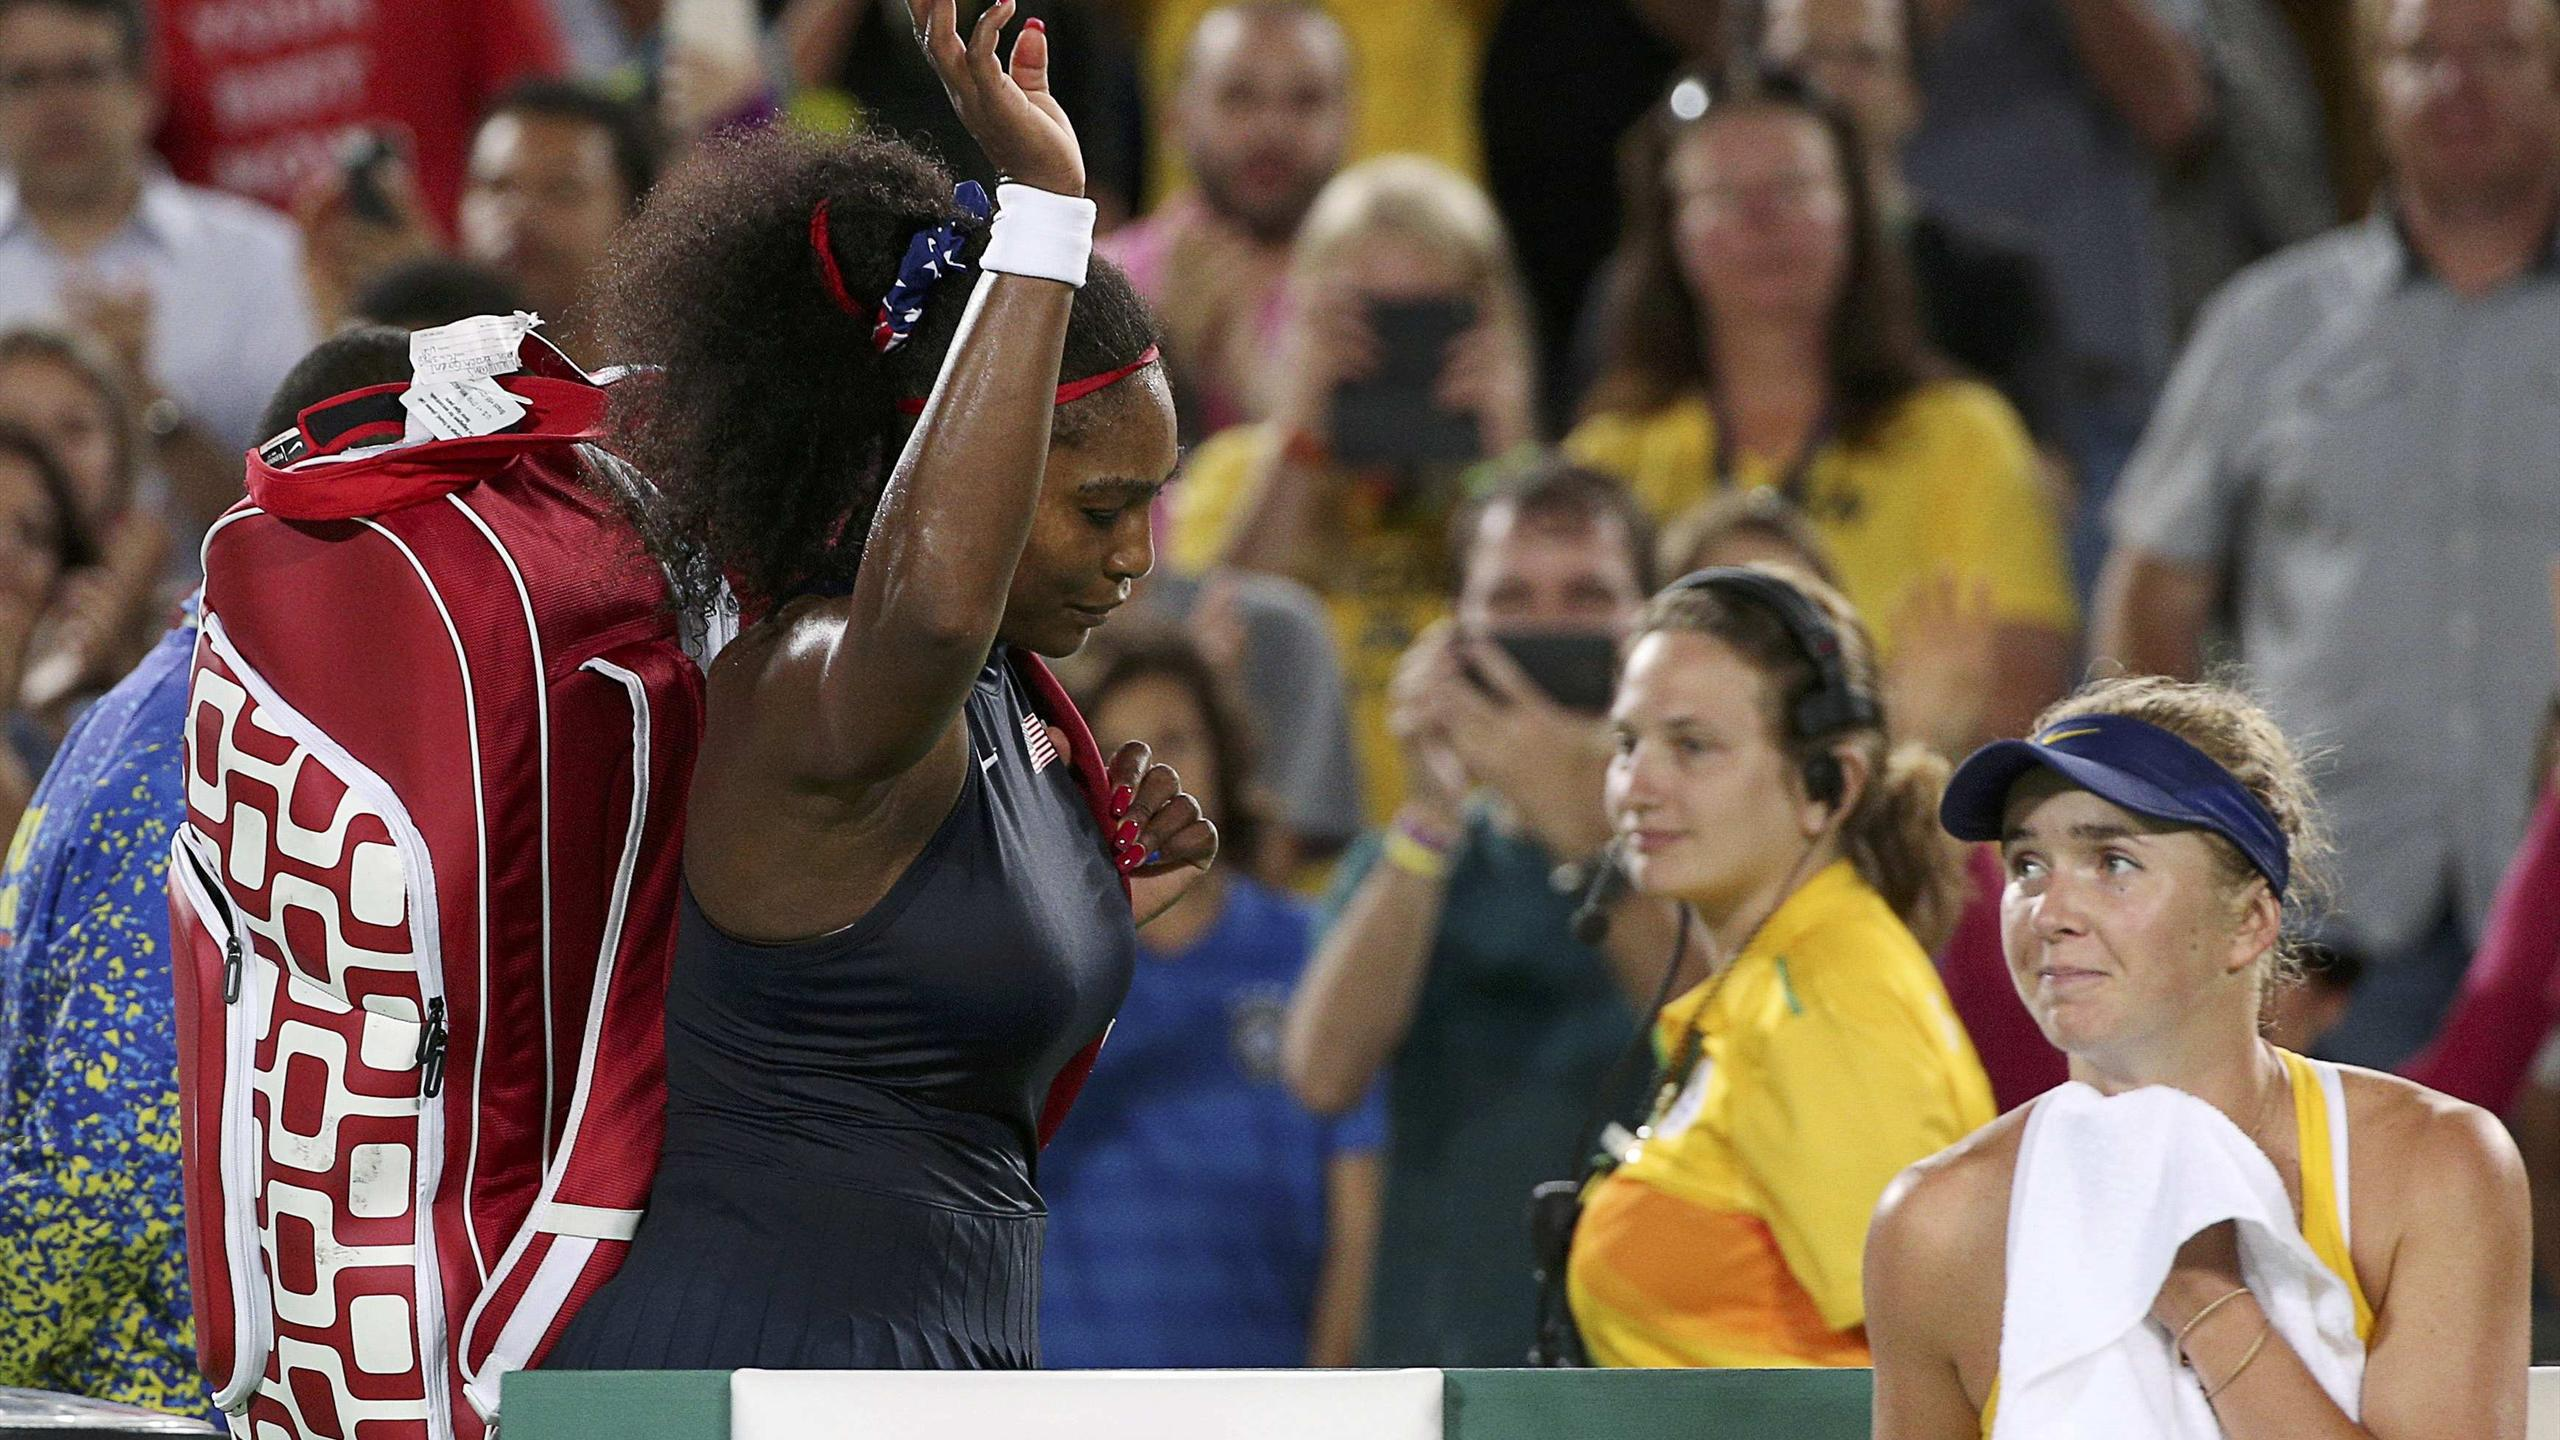 Serena Williams (USA) of USA is dejected after her match against Elina Svitolina (UKR) of Ukraine at Rio 2016